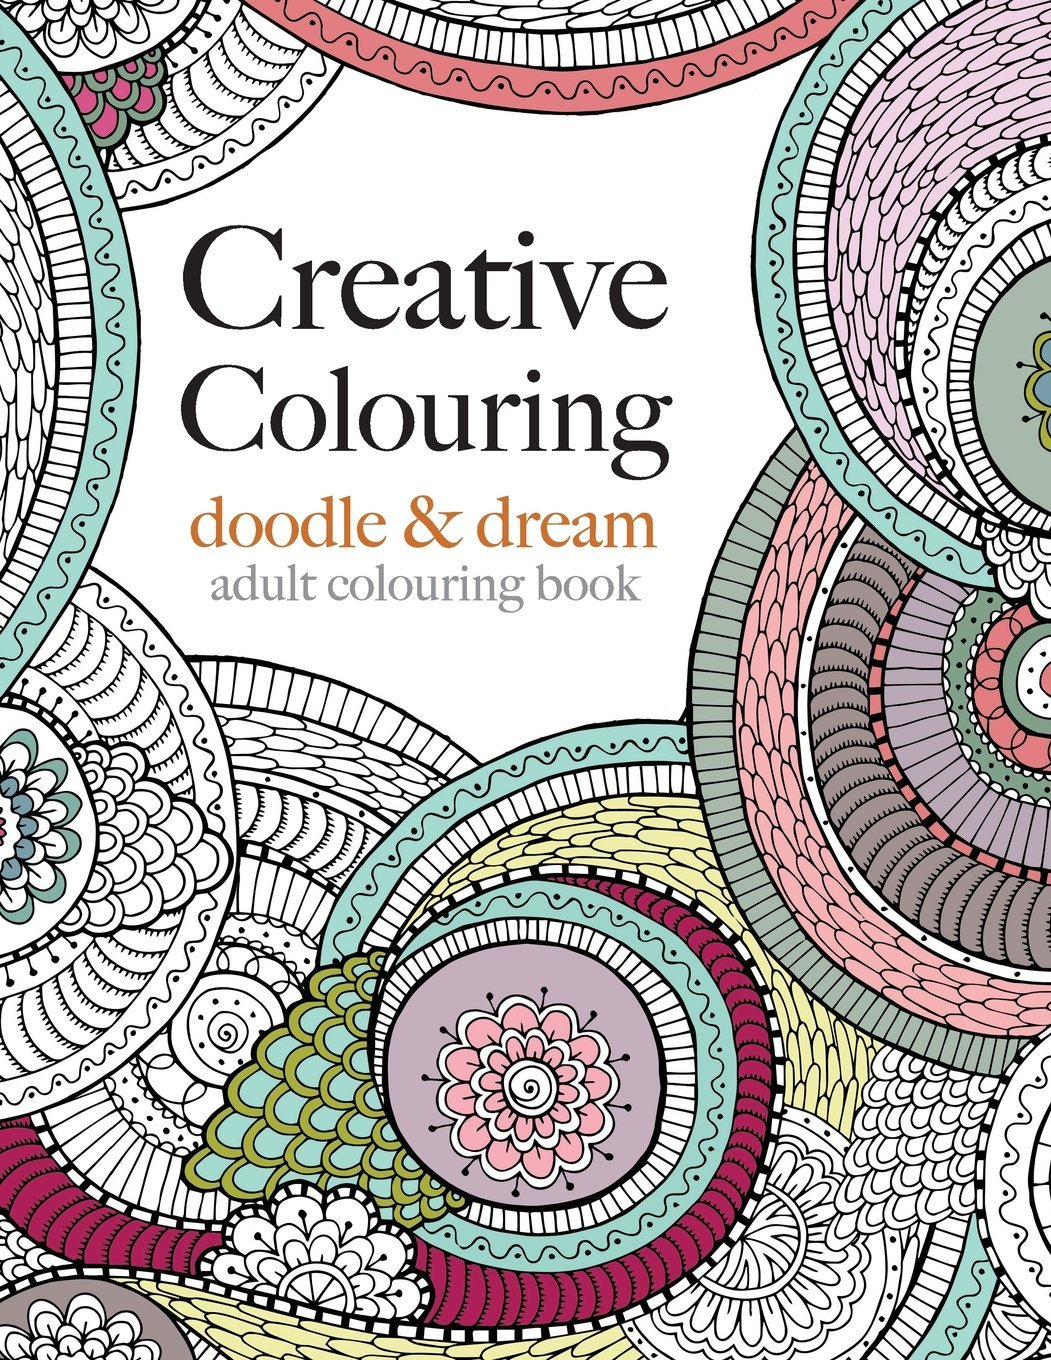 Anti stress colouring doodle and dream - Creative Colouring Doodle Dream An Intricate Colouring Book For All Amazon Co Uk Christina Rose 9781910771143 Books